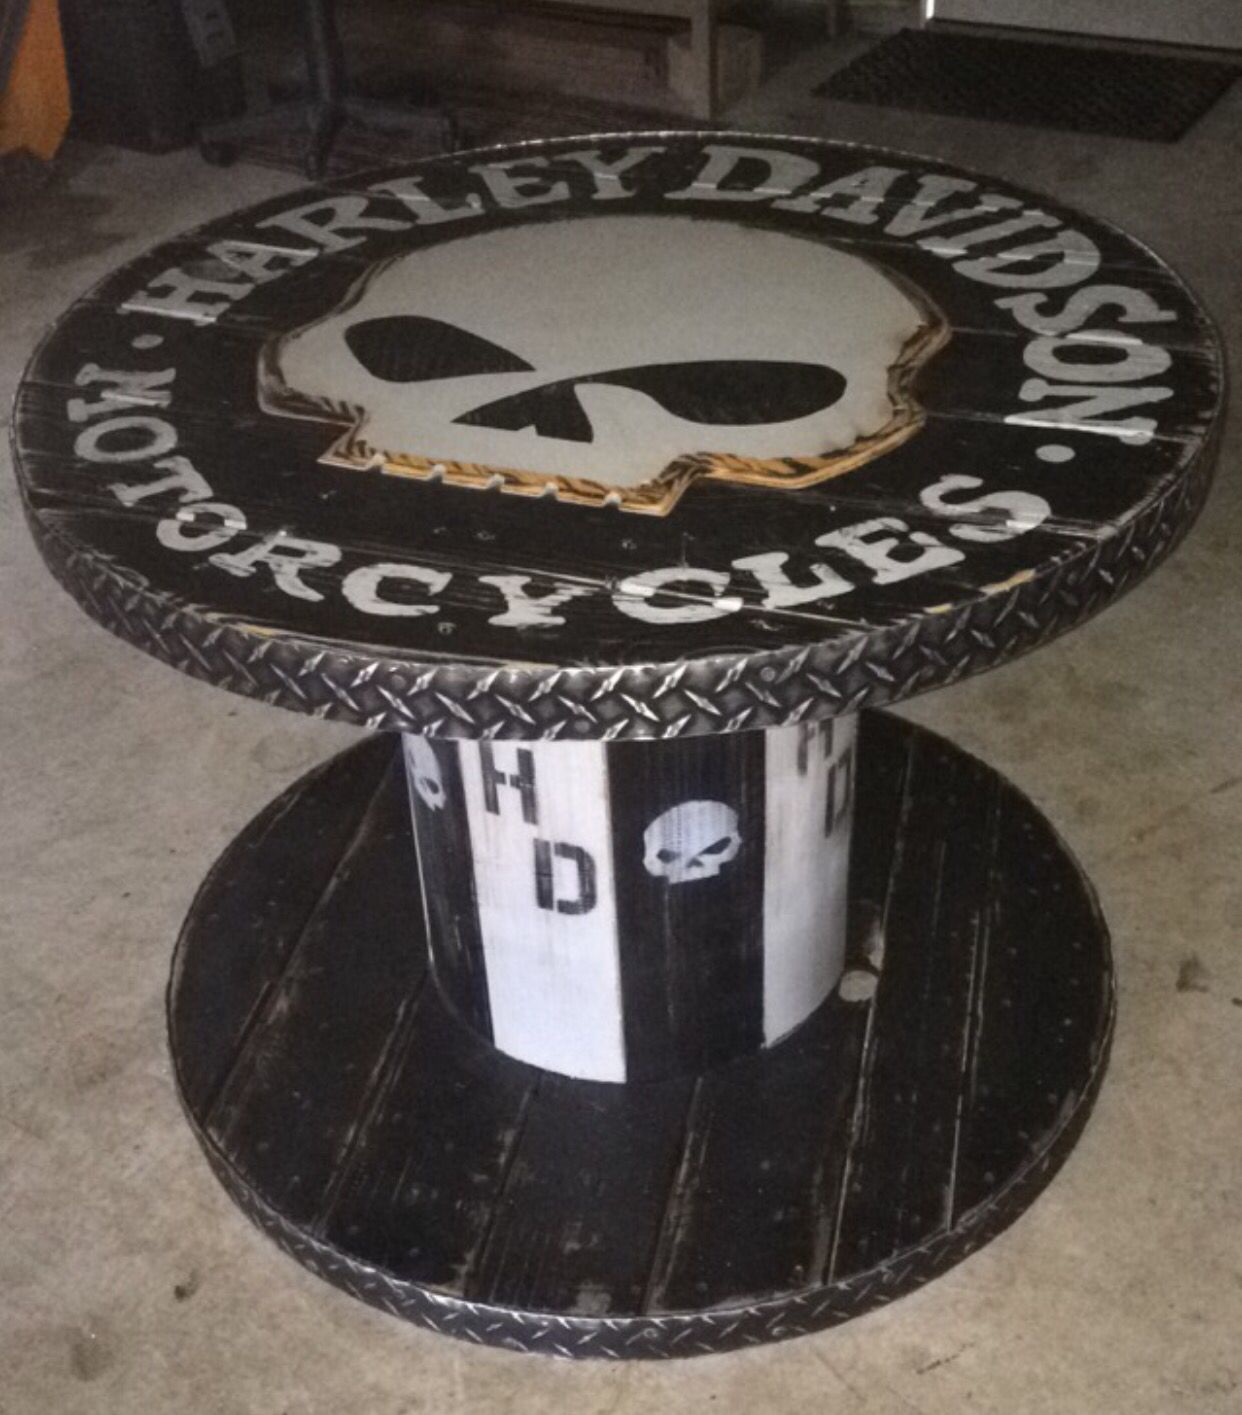 Wooden Spool Harley Davidson Table Harley Davidson